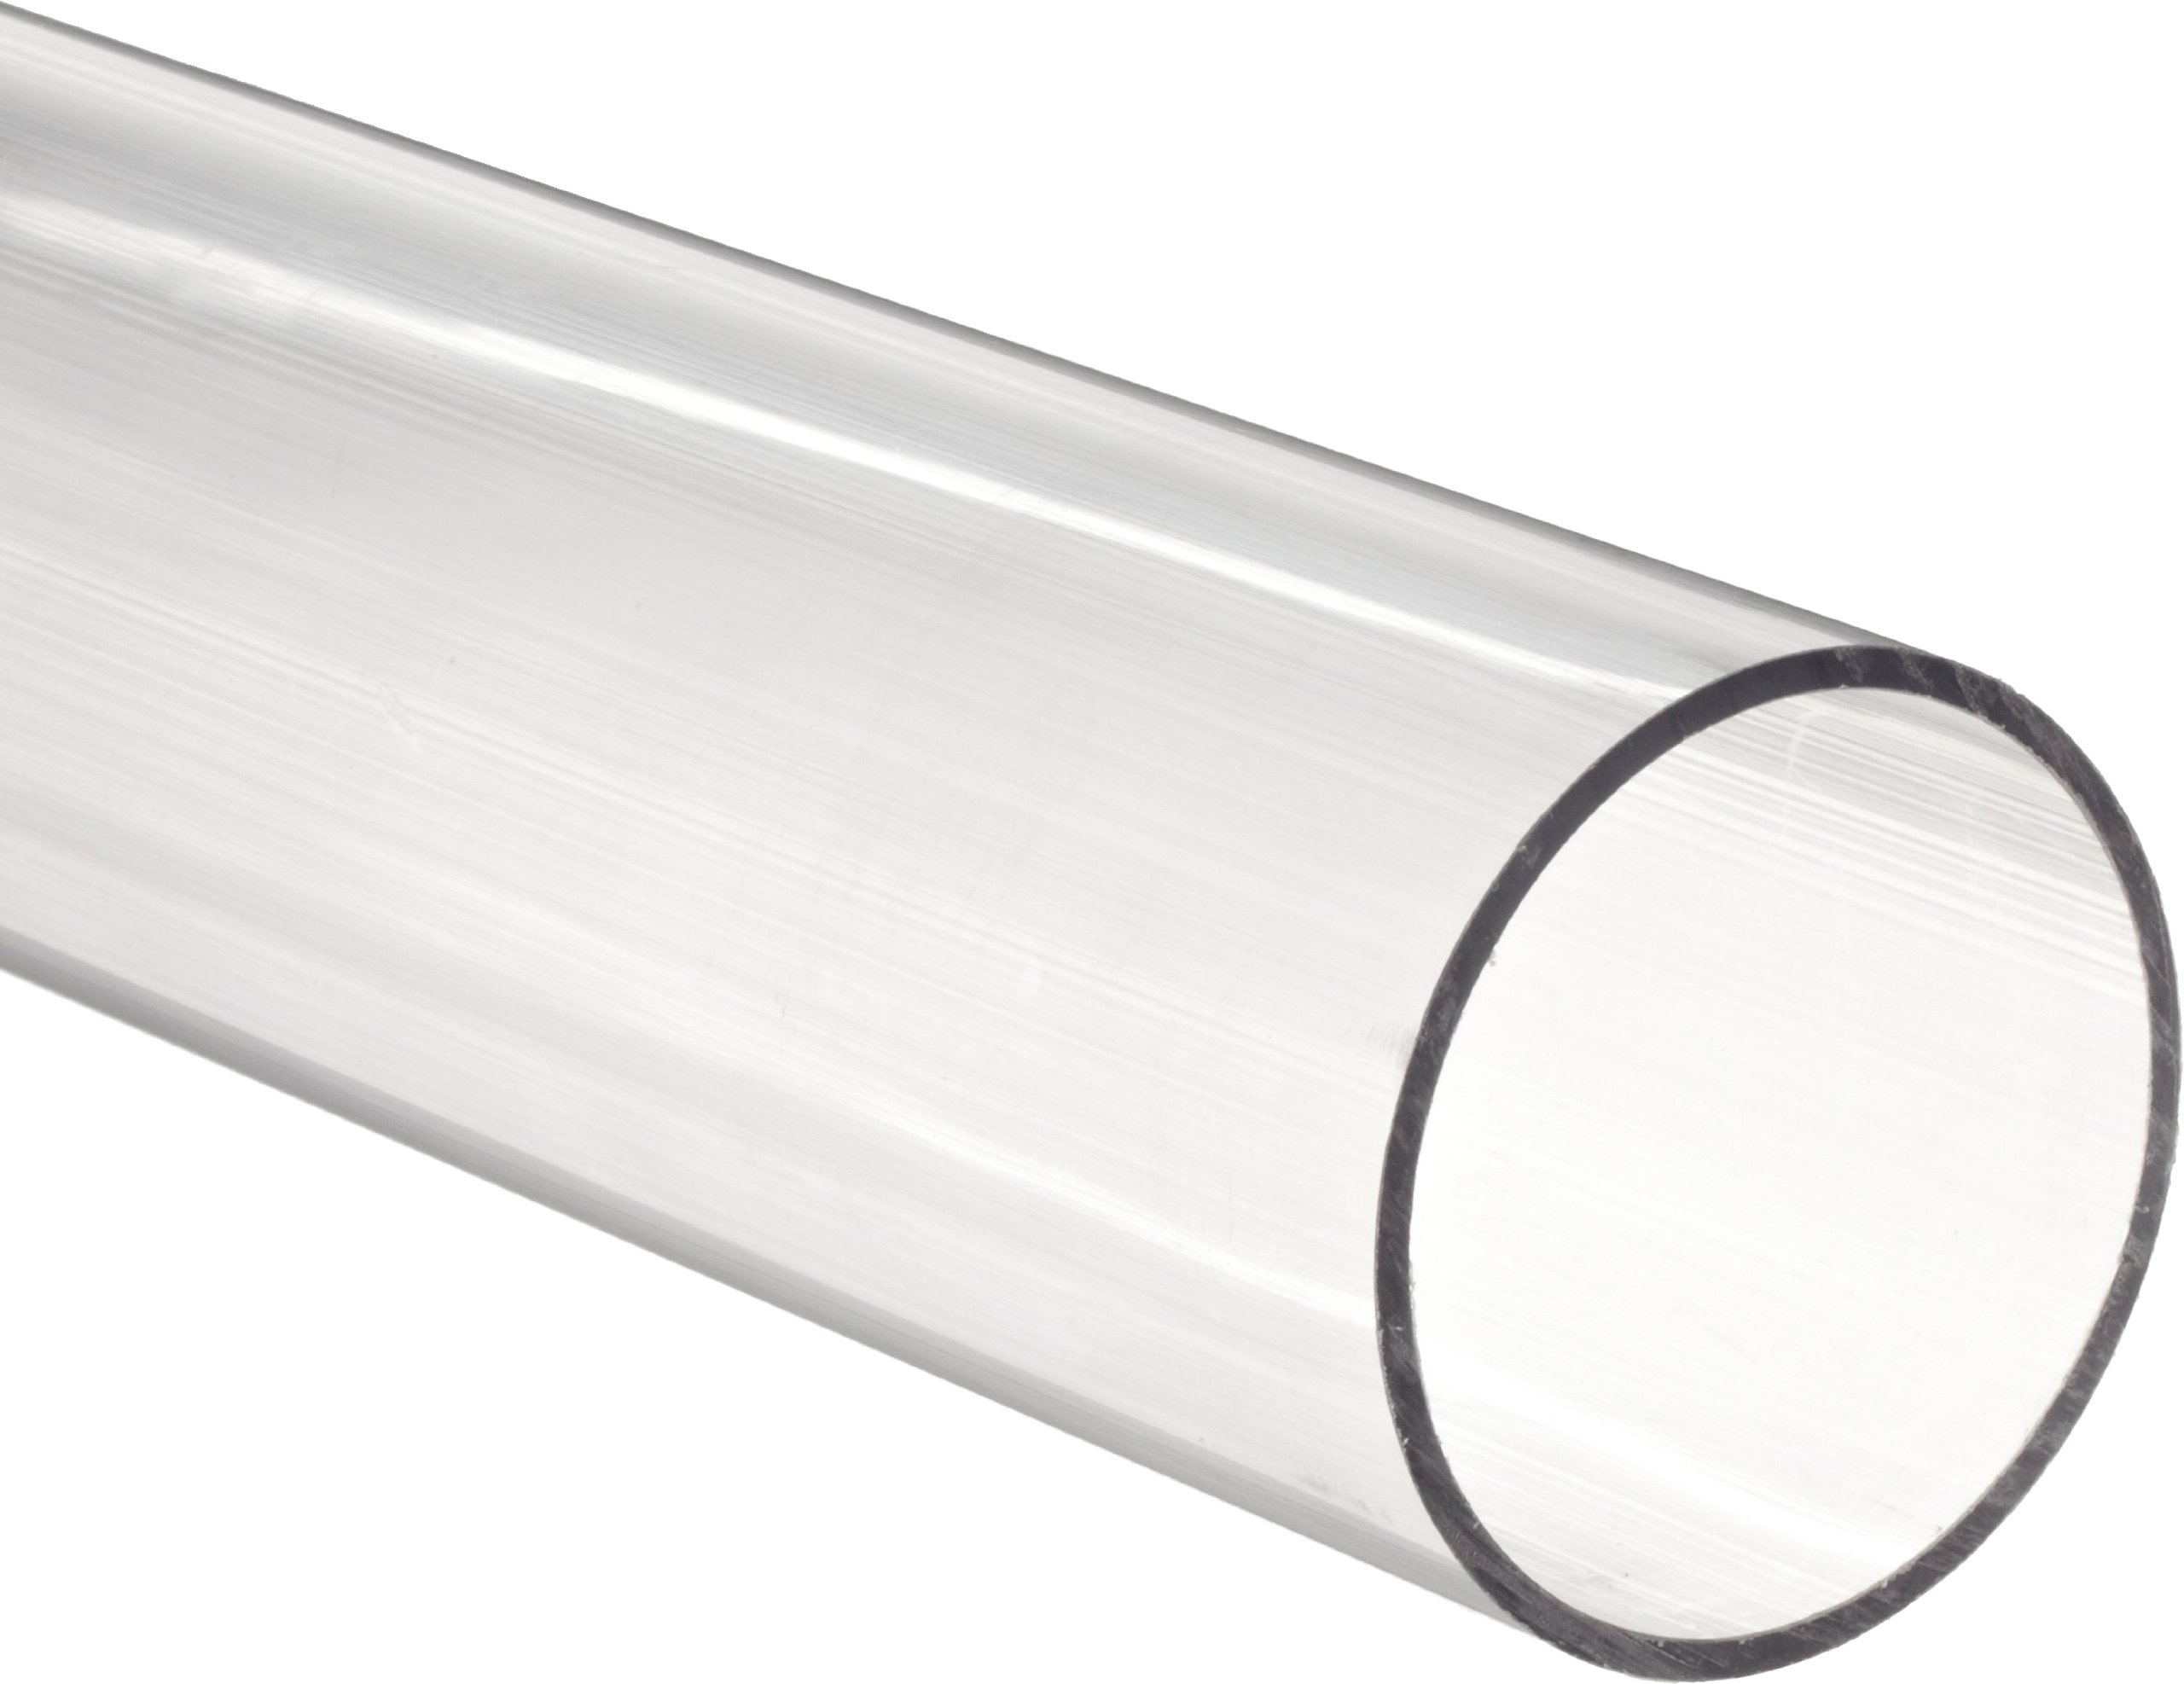 Clear Polycarbonate Tubing, 3/8'' ID, 1/2'' OD, 1/16'' Wall, 6' Length